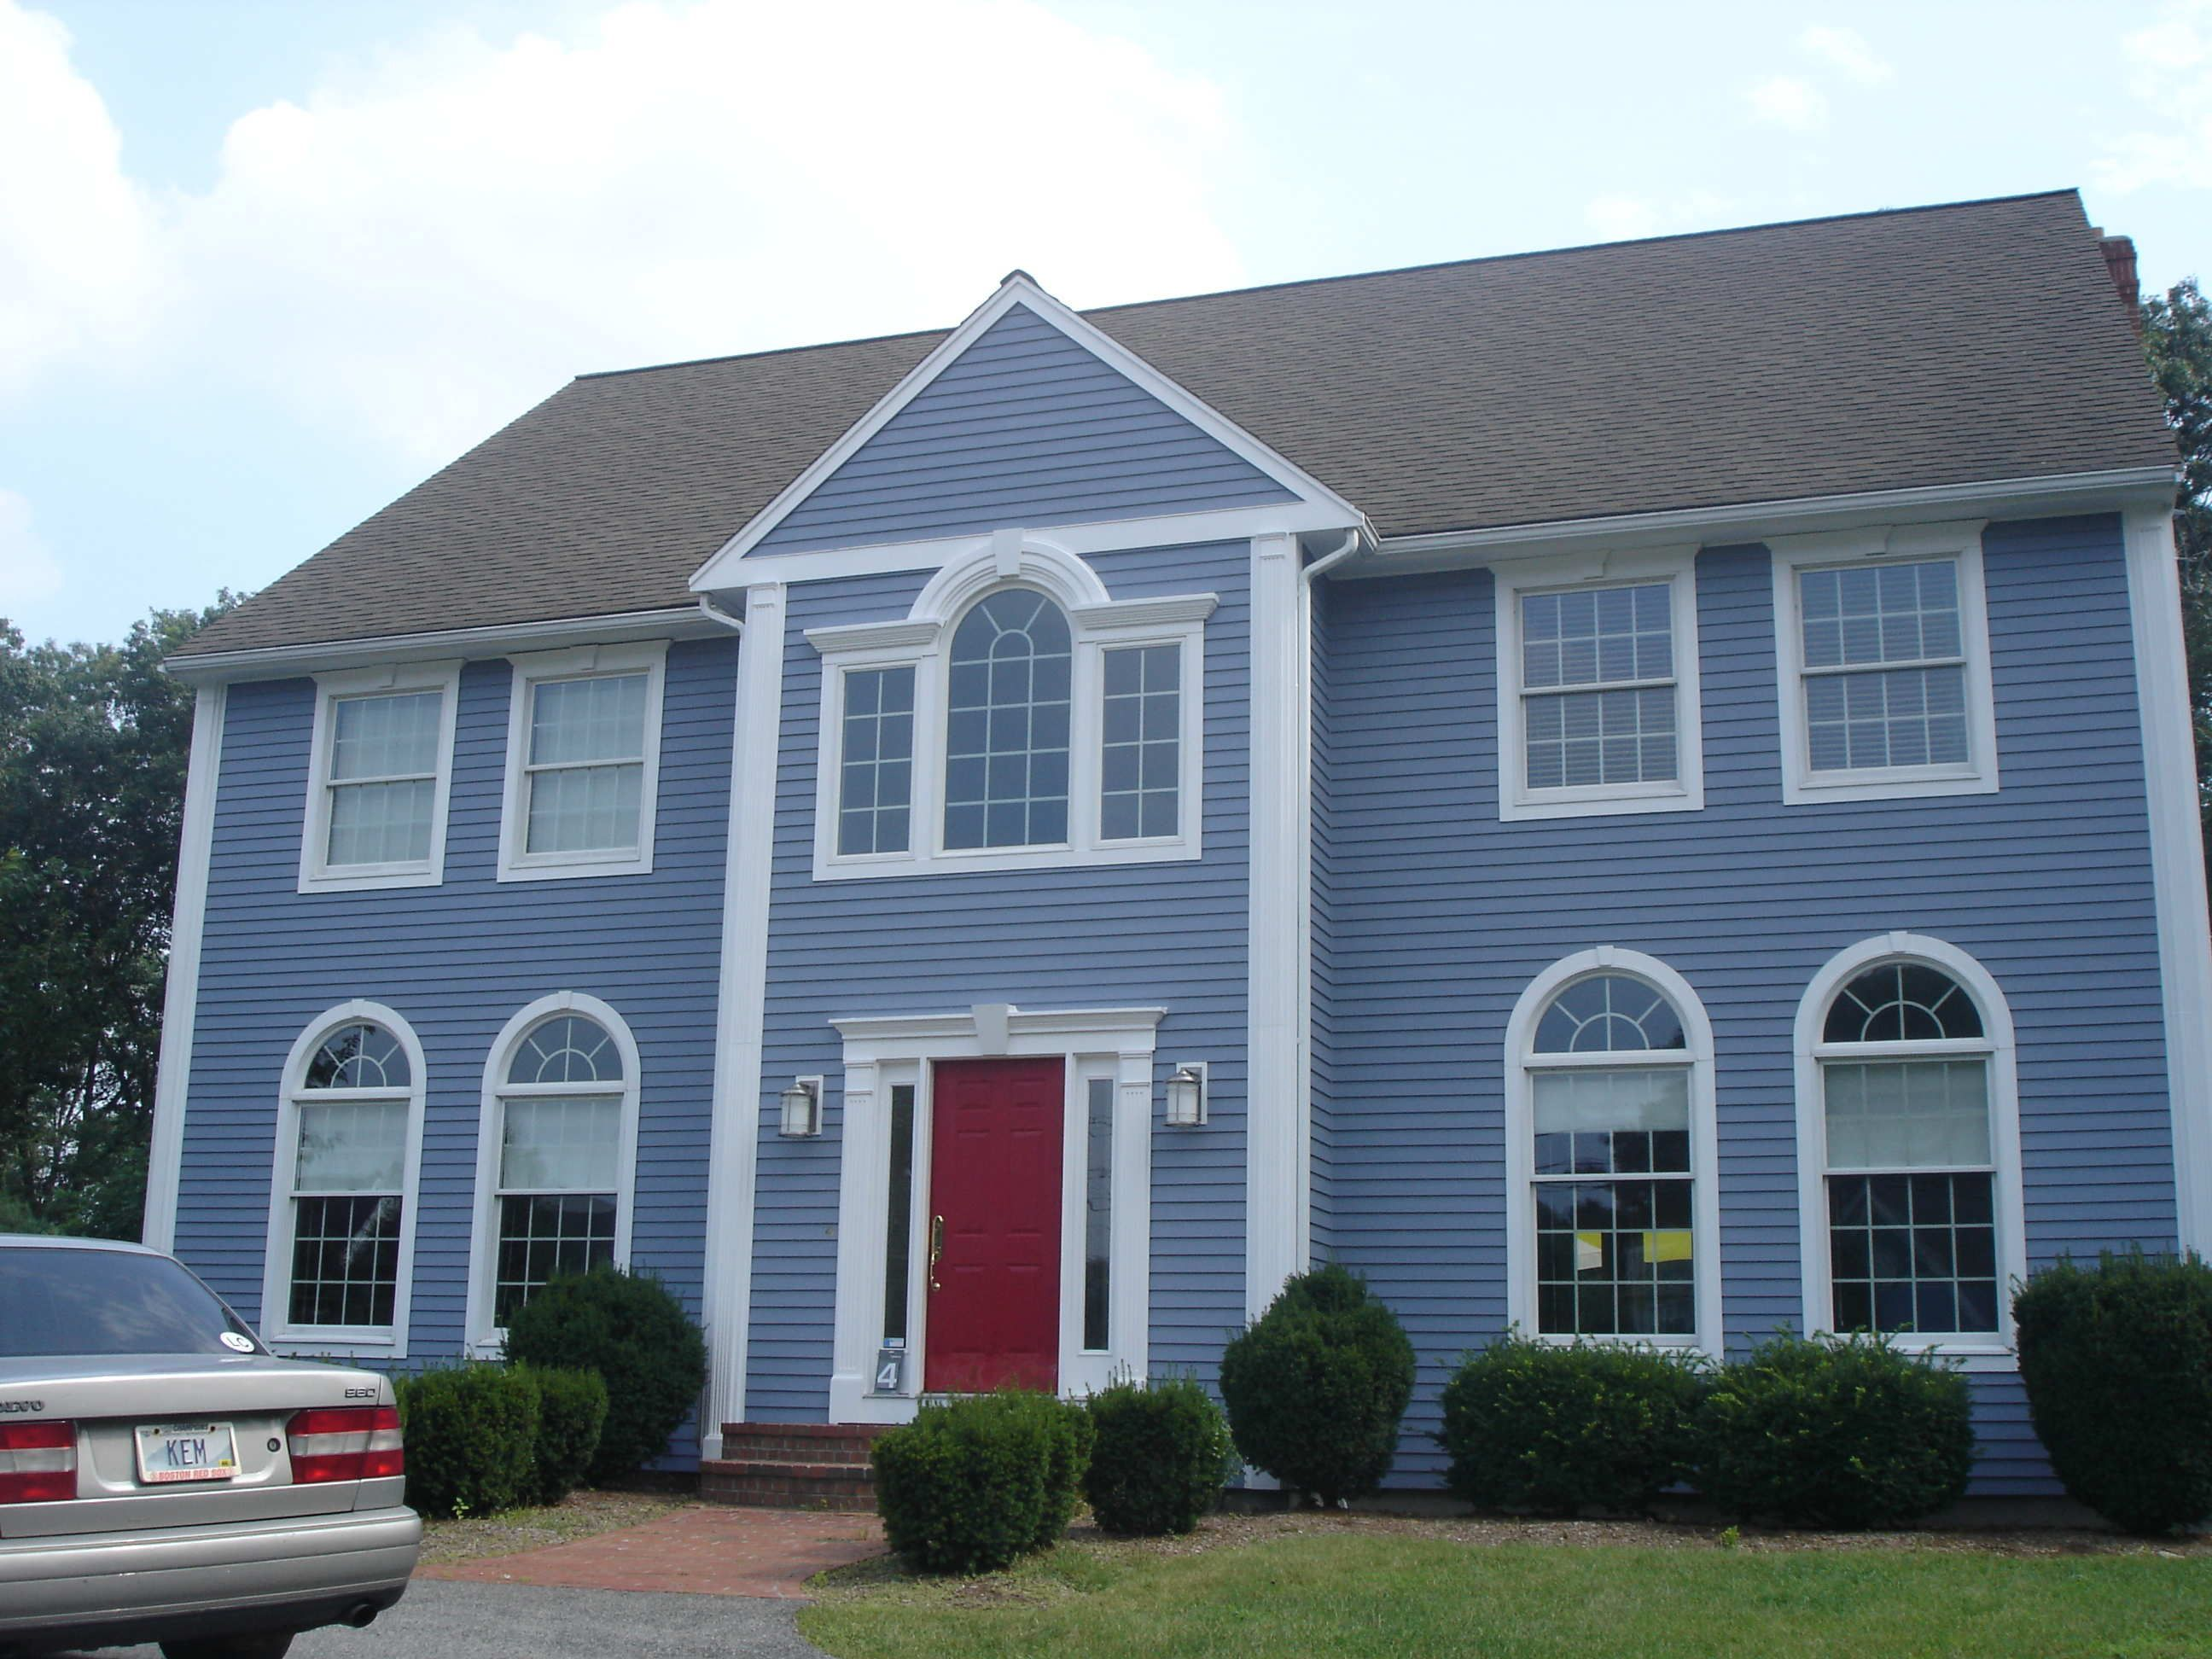 Blue Exterior House Paint Colors At CertaPro Painters of ...